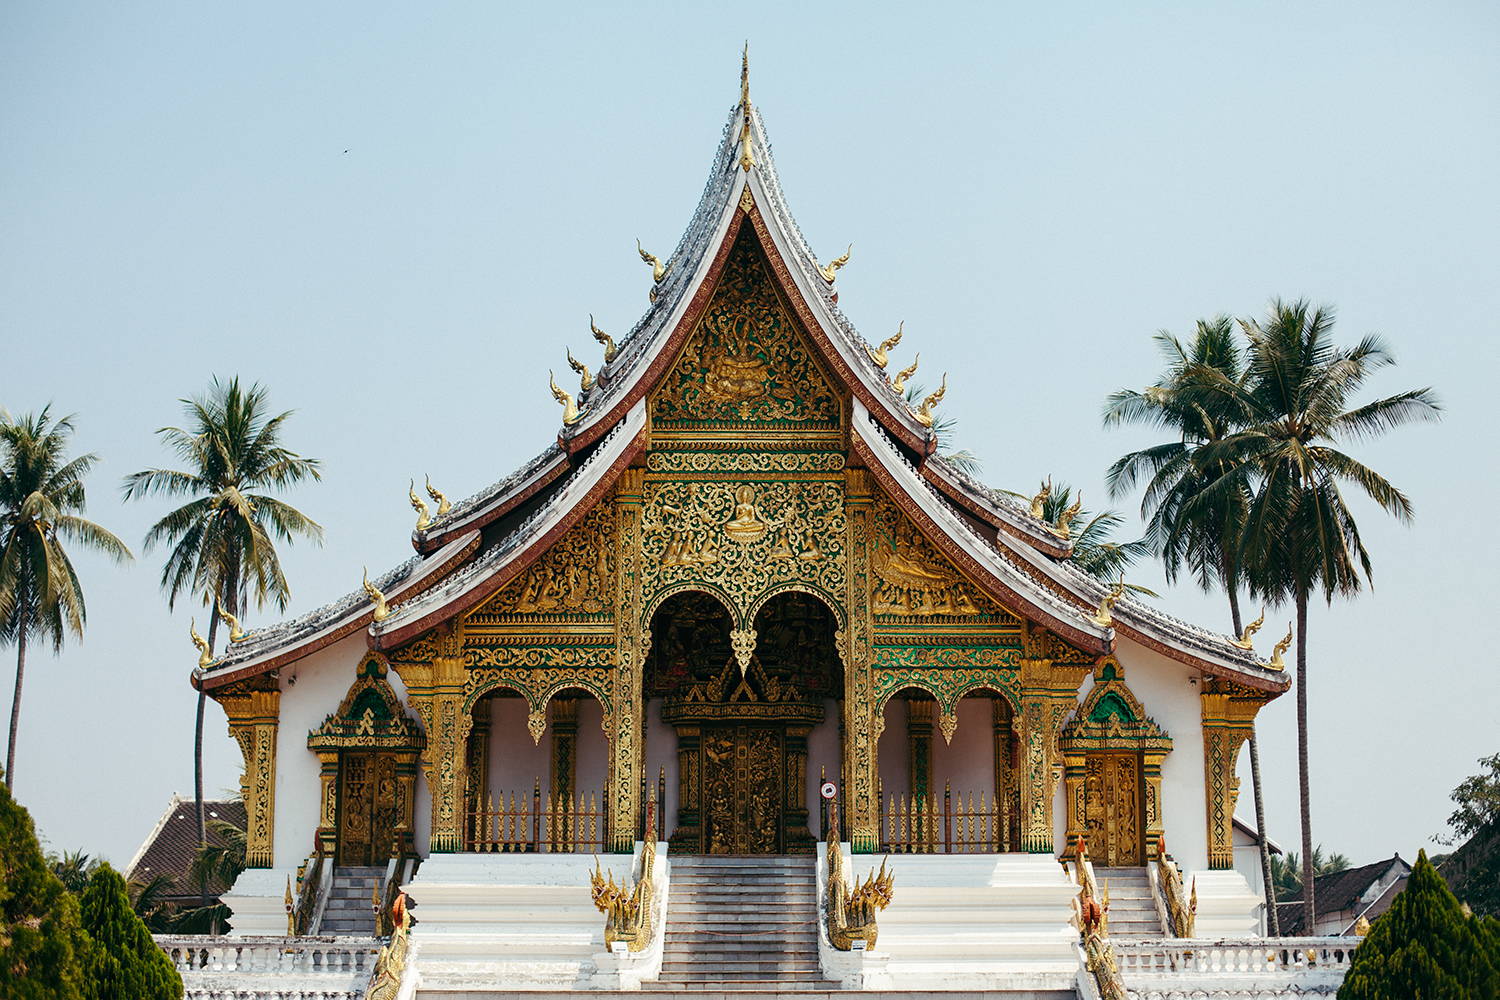 1. Luang Prabang, Laos - Kuang Si Waterfalls!The architectural beauty of the city.All our needs met in one place - affordable, beautiful, has a small party-scene, has cultural sights and natural sights.